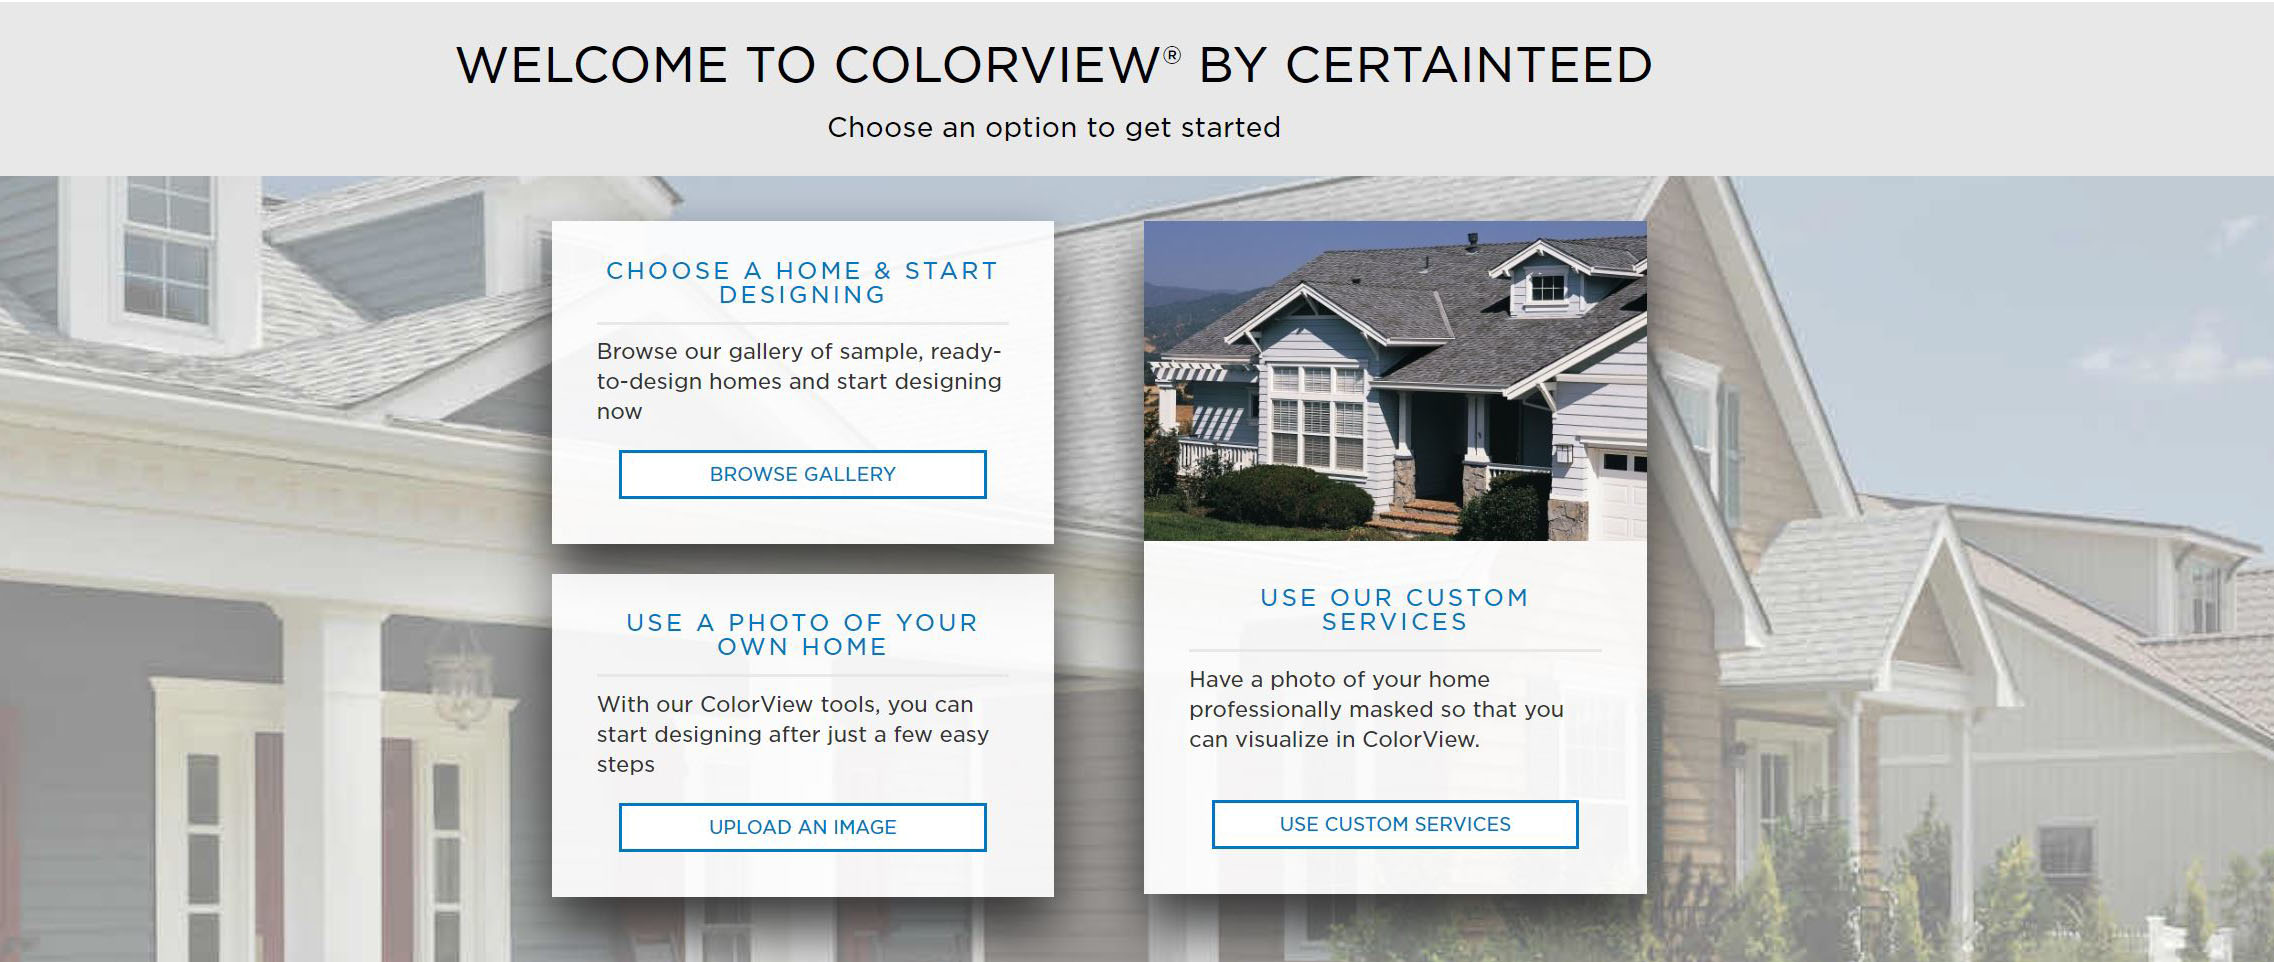 5 Contractor tools roofing siding trim CertainTeed ColorView